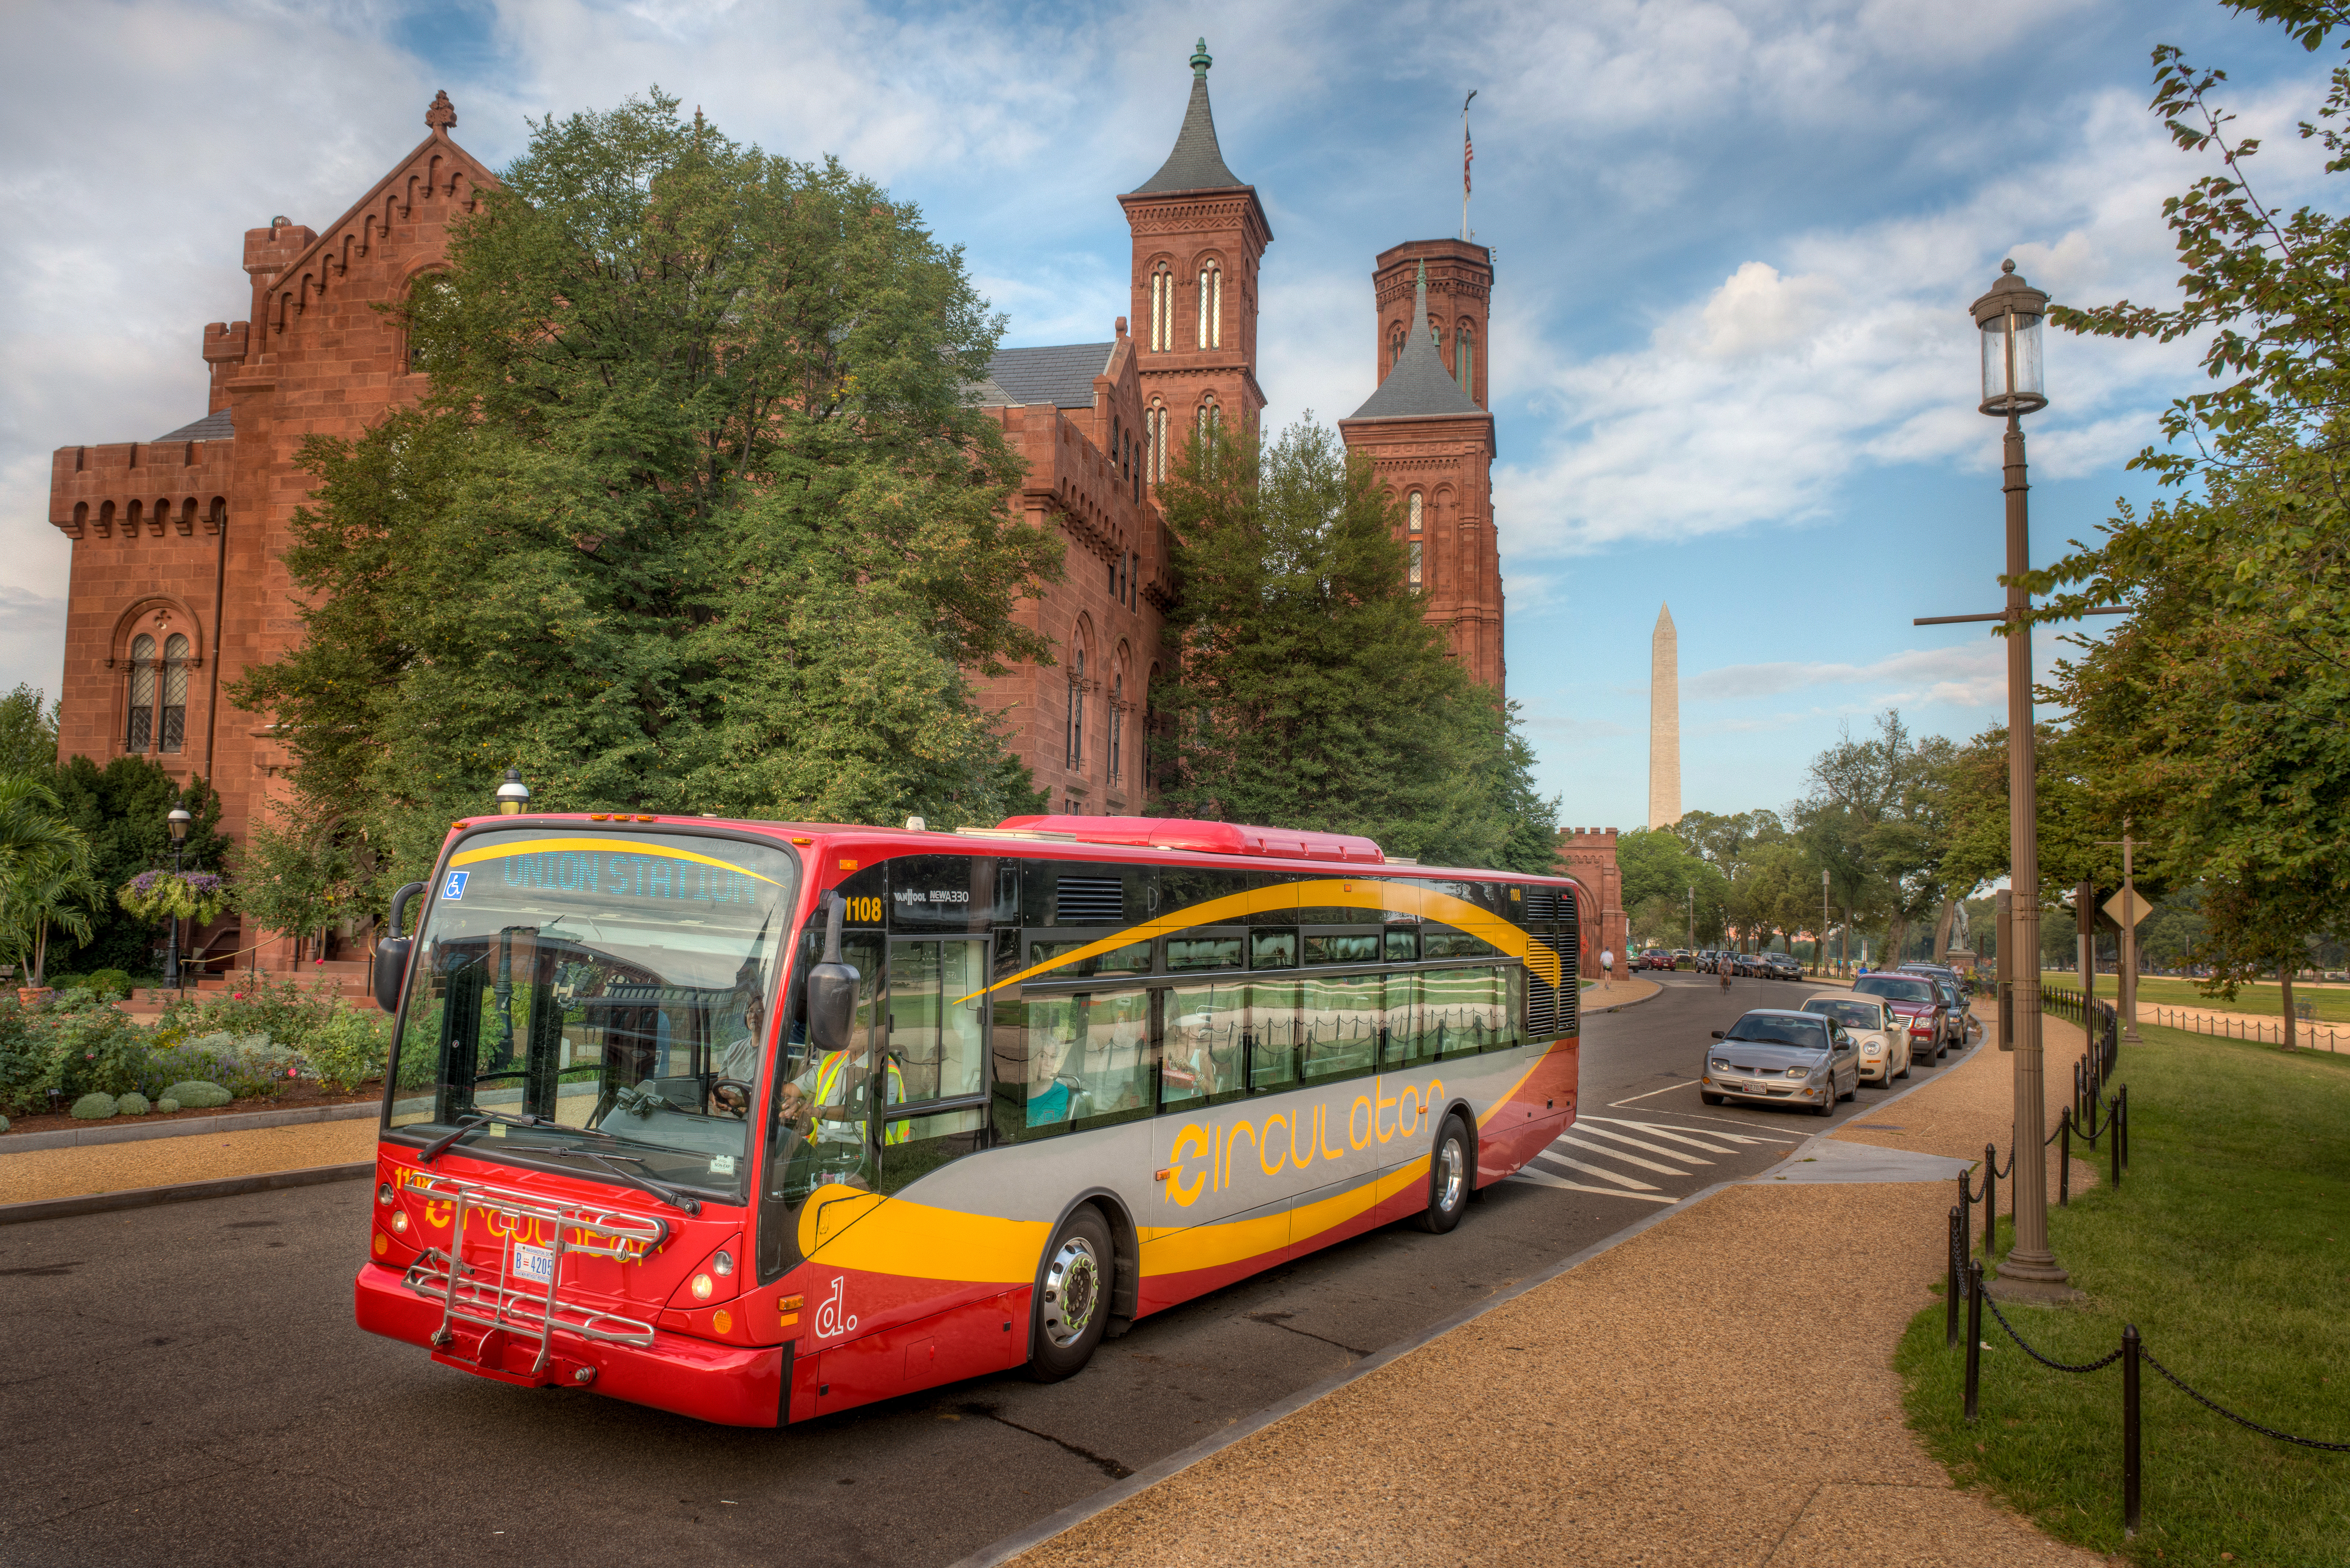 DC Circulator at Smithsonian Visitor's Center